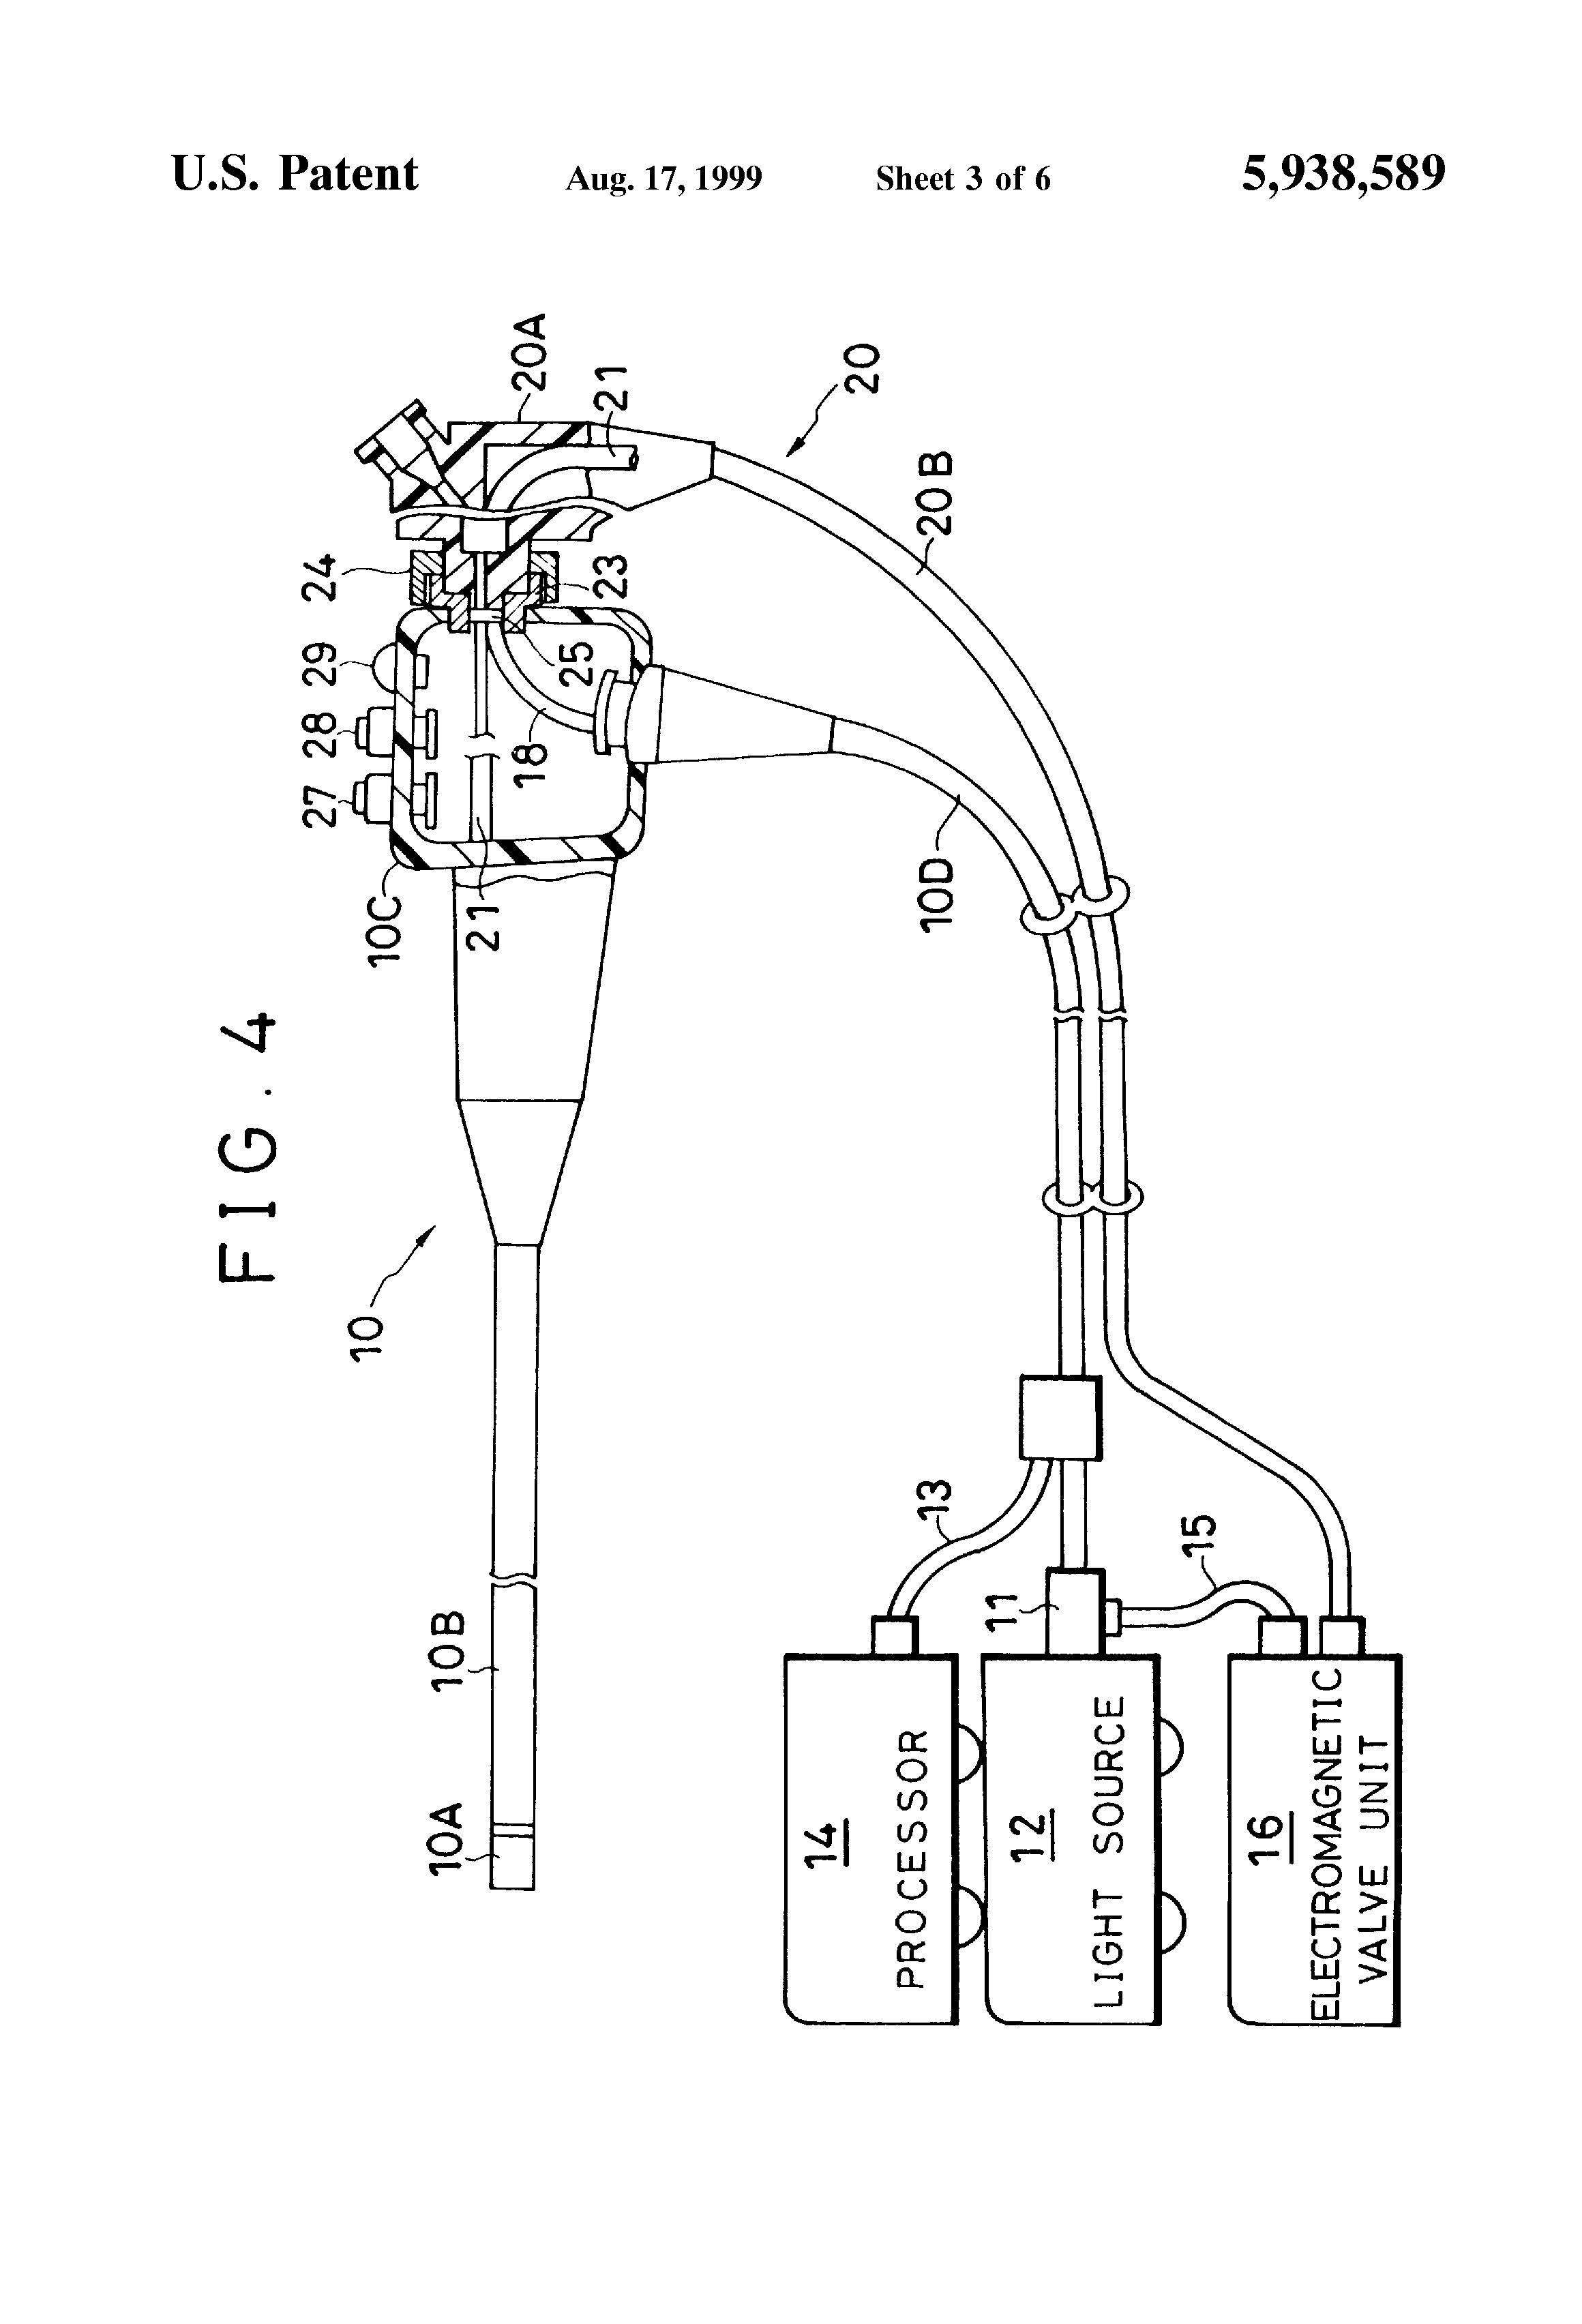 Duct Control Lever : Patent us control switch device for an endoscope